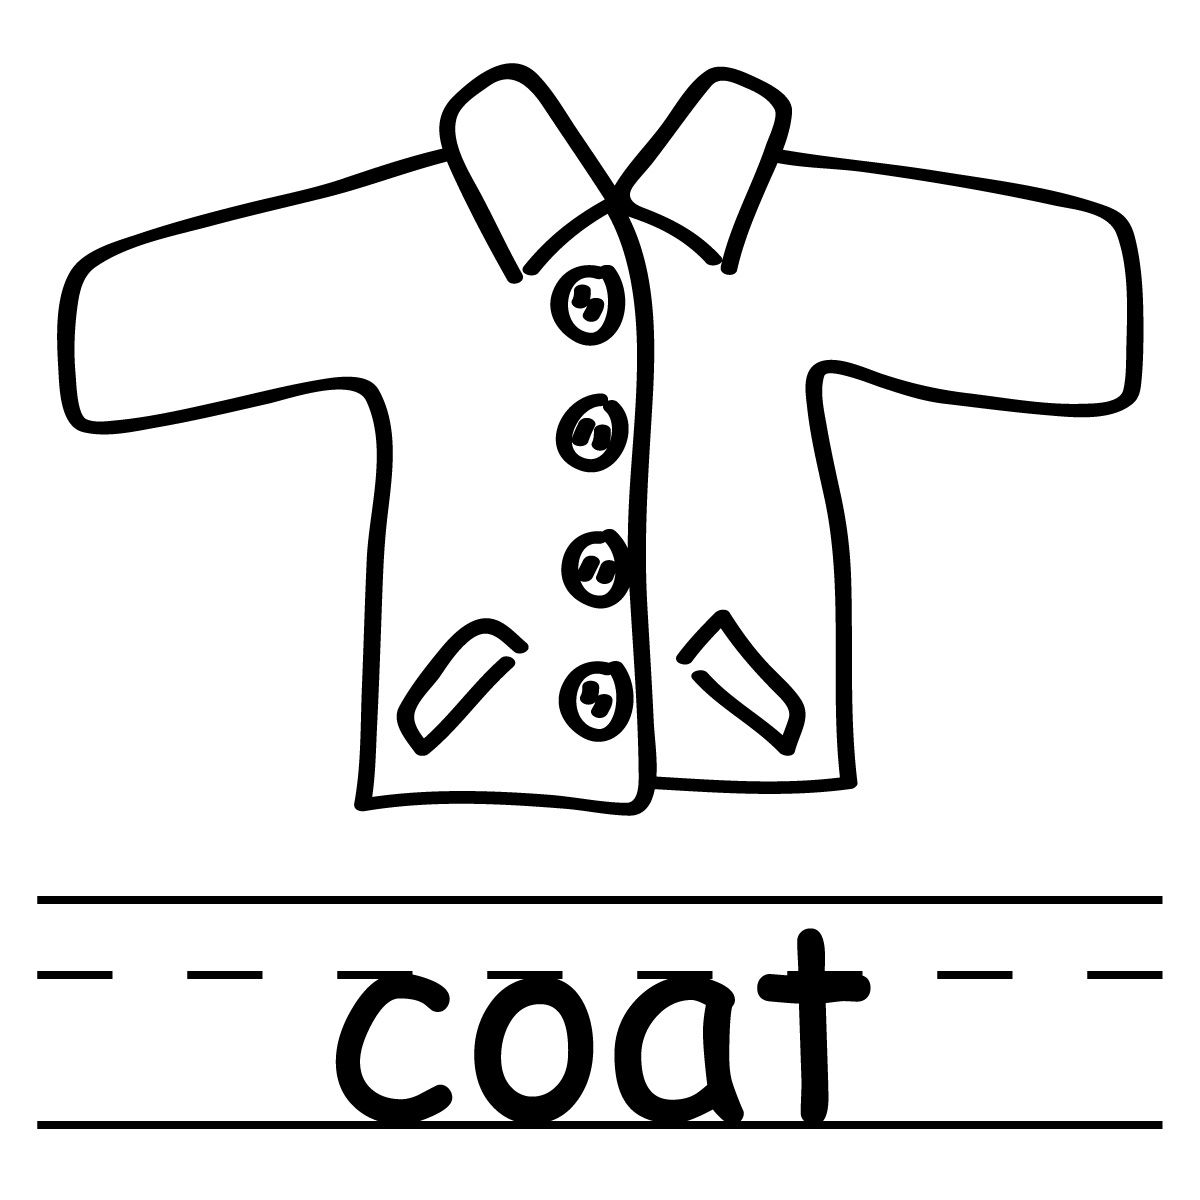 hight resolution of free clipart for teachers clothing for teachers parents students and similar image and photo in clothing